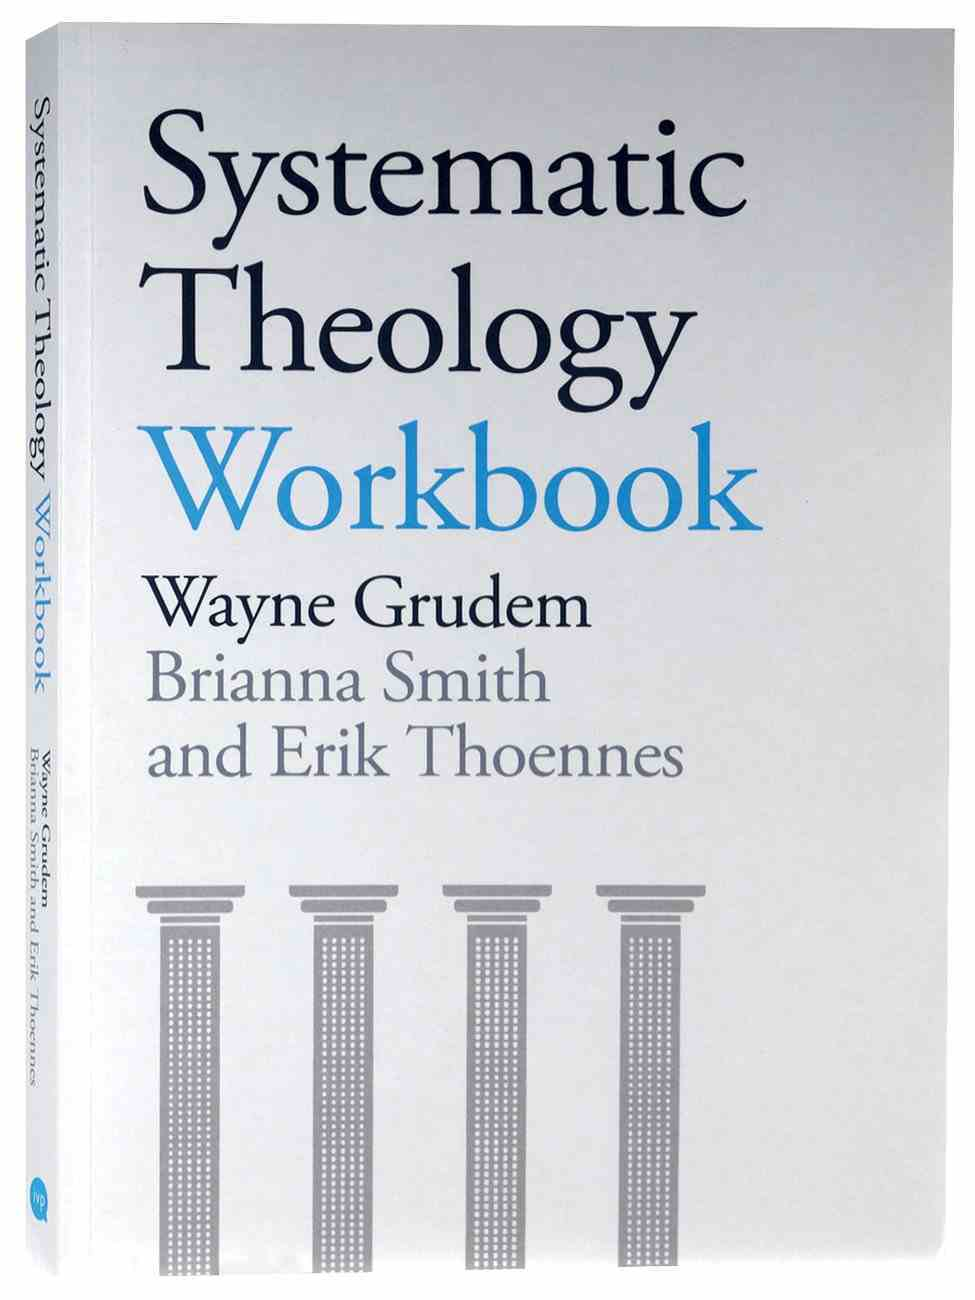 Systematic Theology Workbook (Second Edition) Paperback